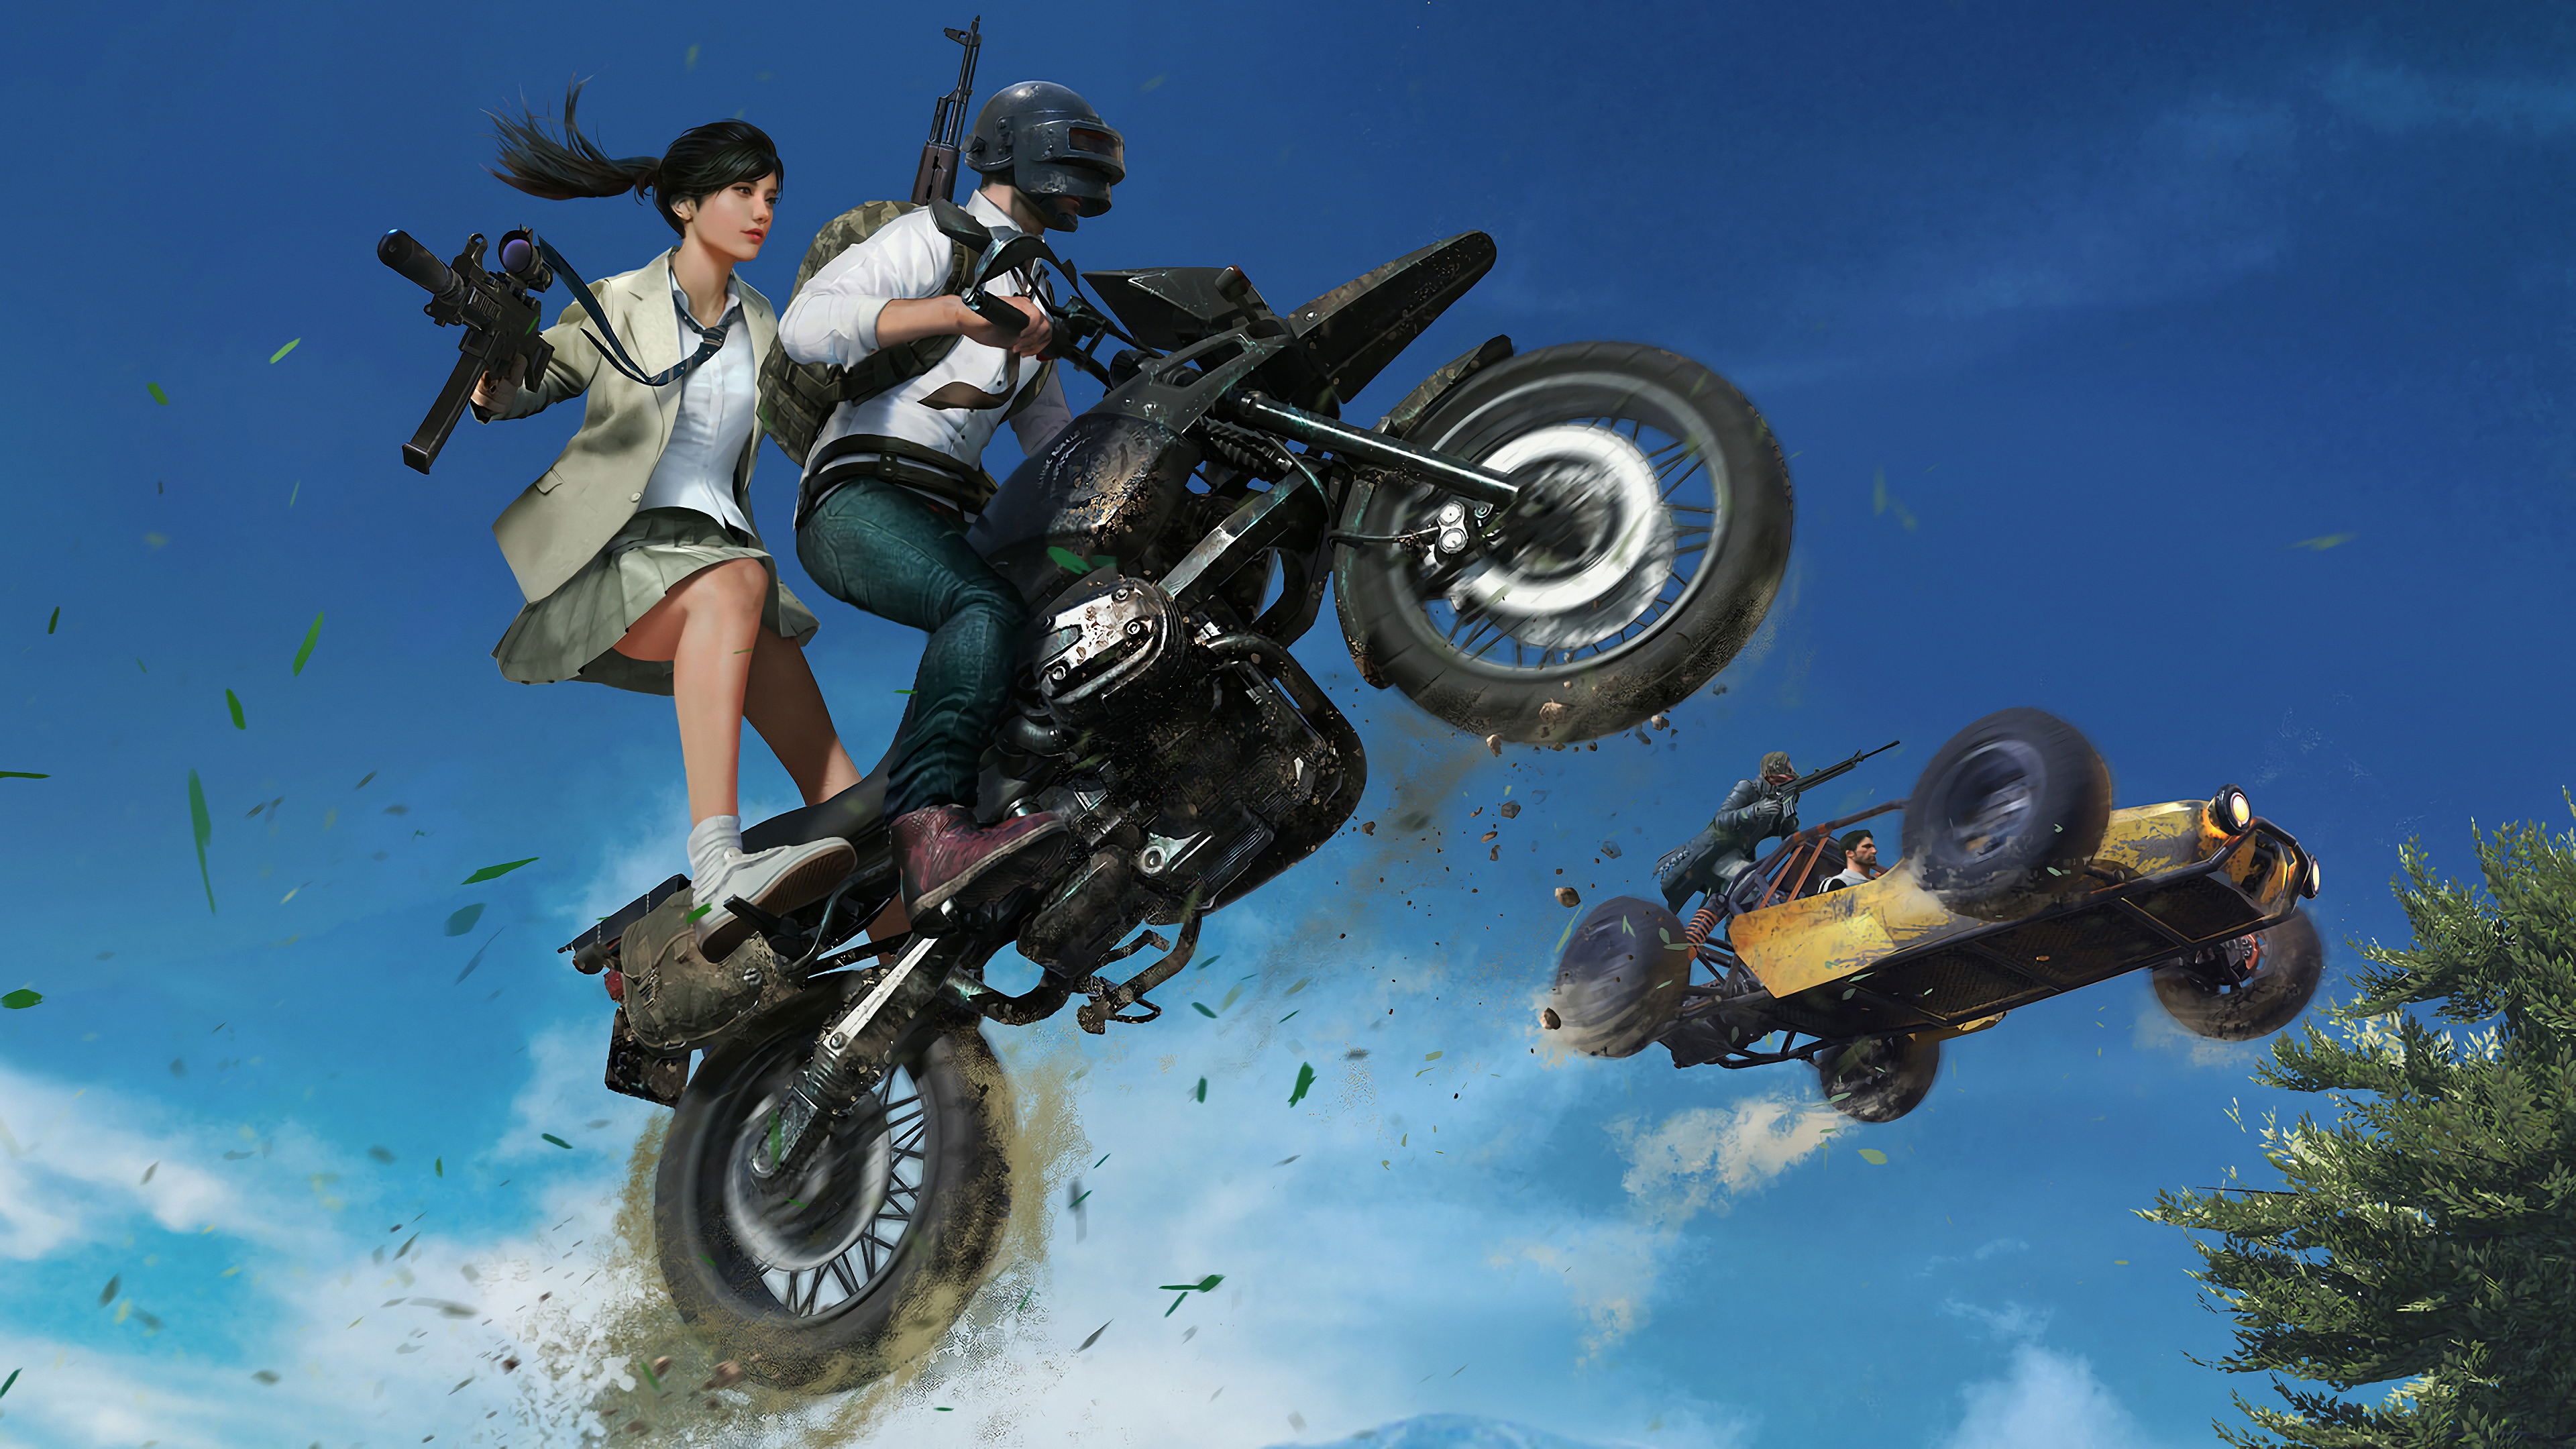 Pubg Hd Wallpaper Iphone: Player Unknown's Battlegrounds (PUBG) 4K Bike Girl Pubg